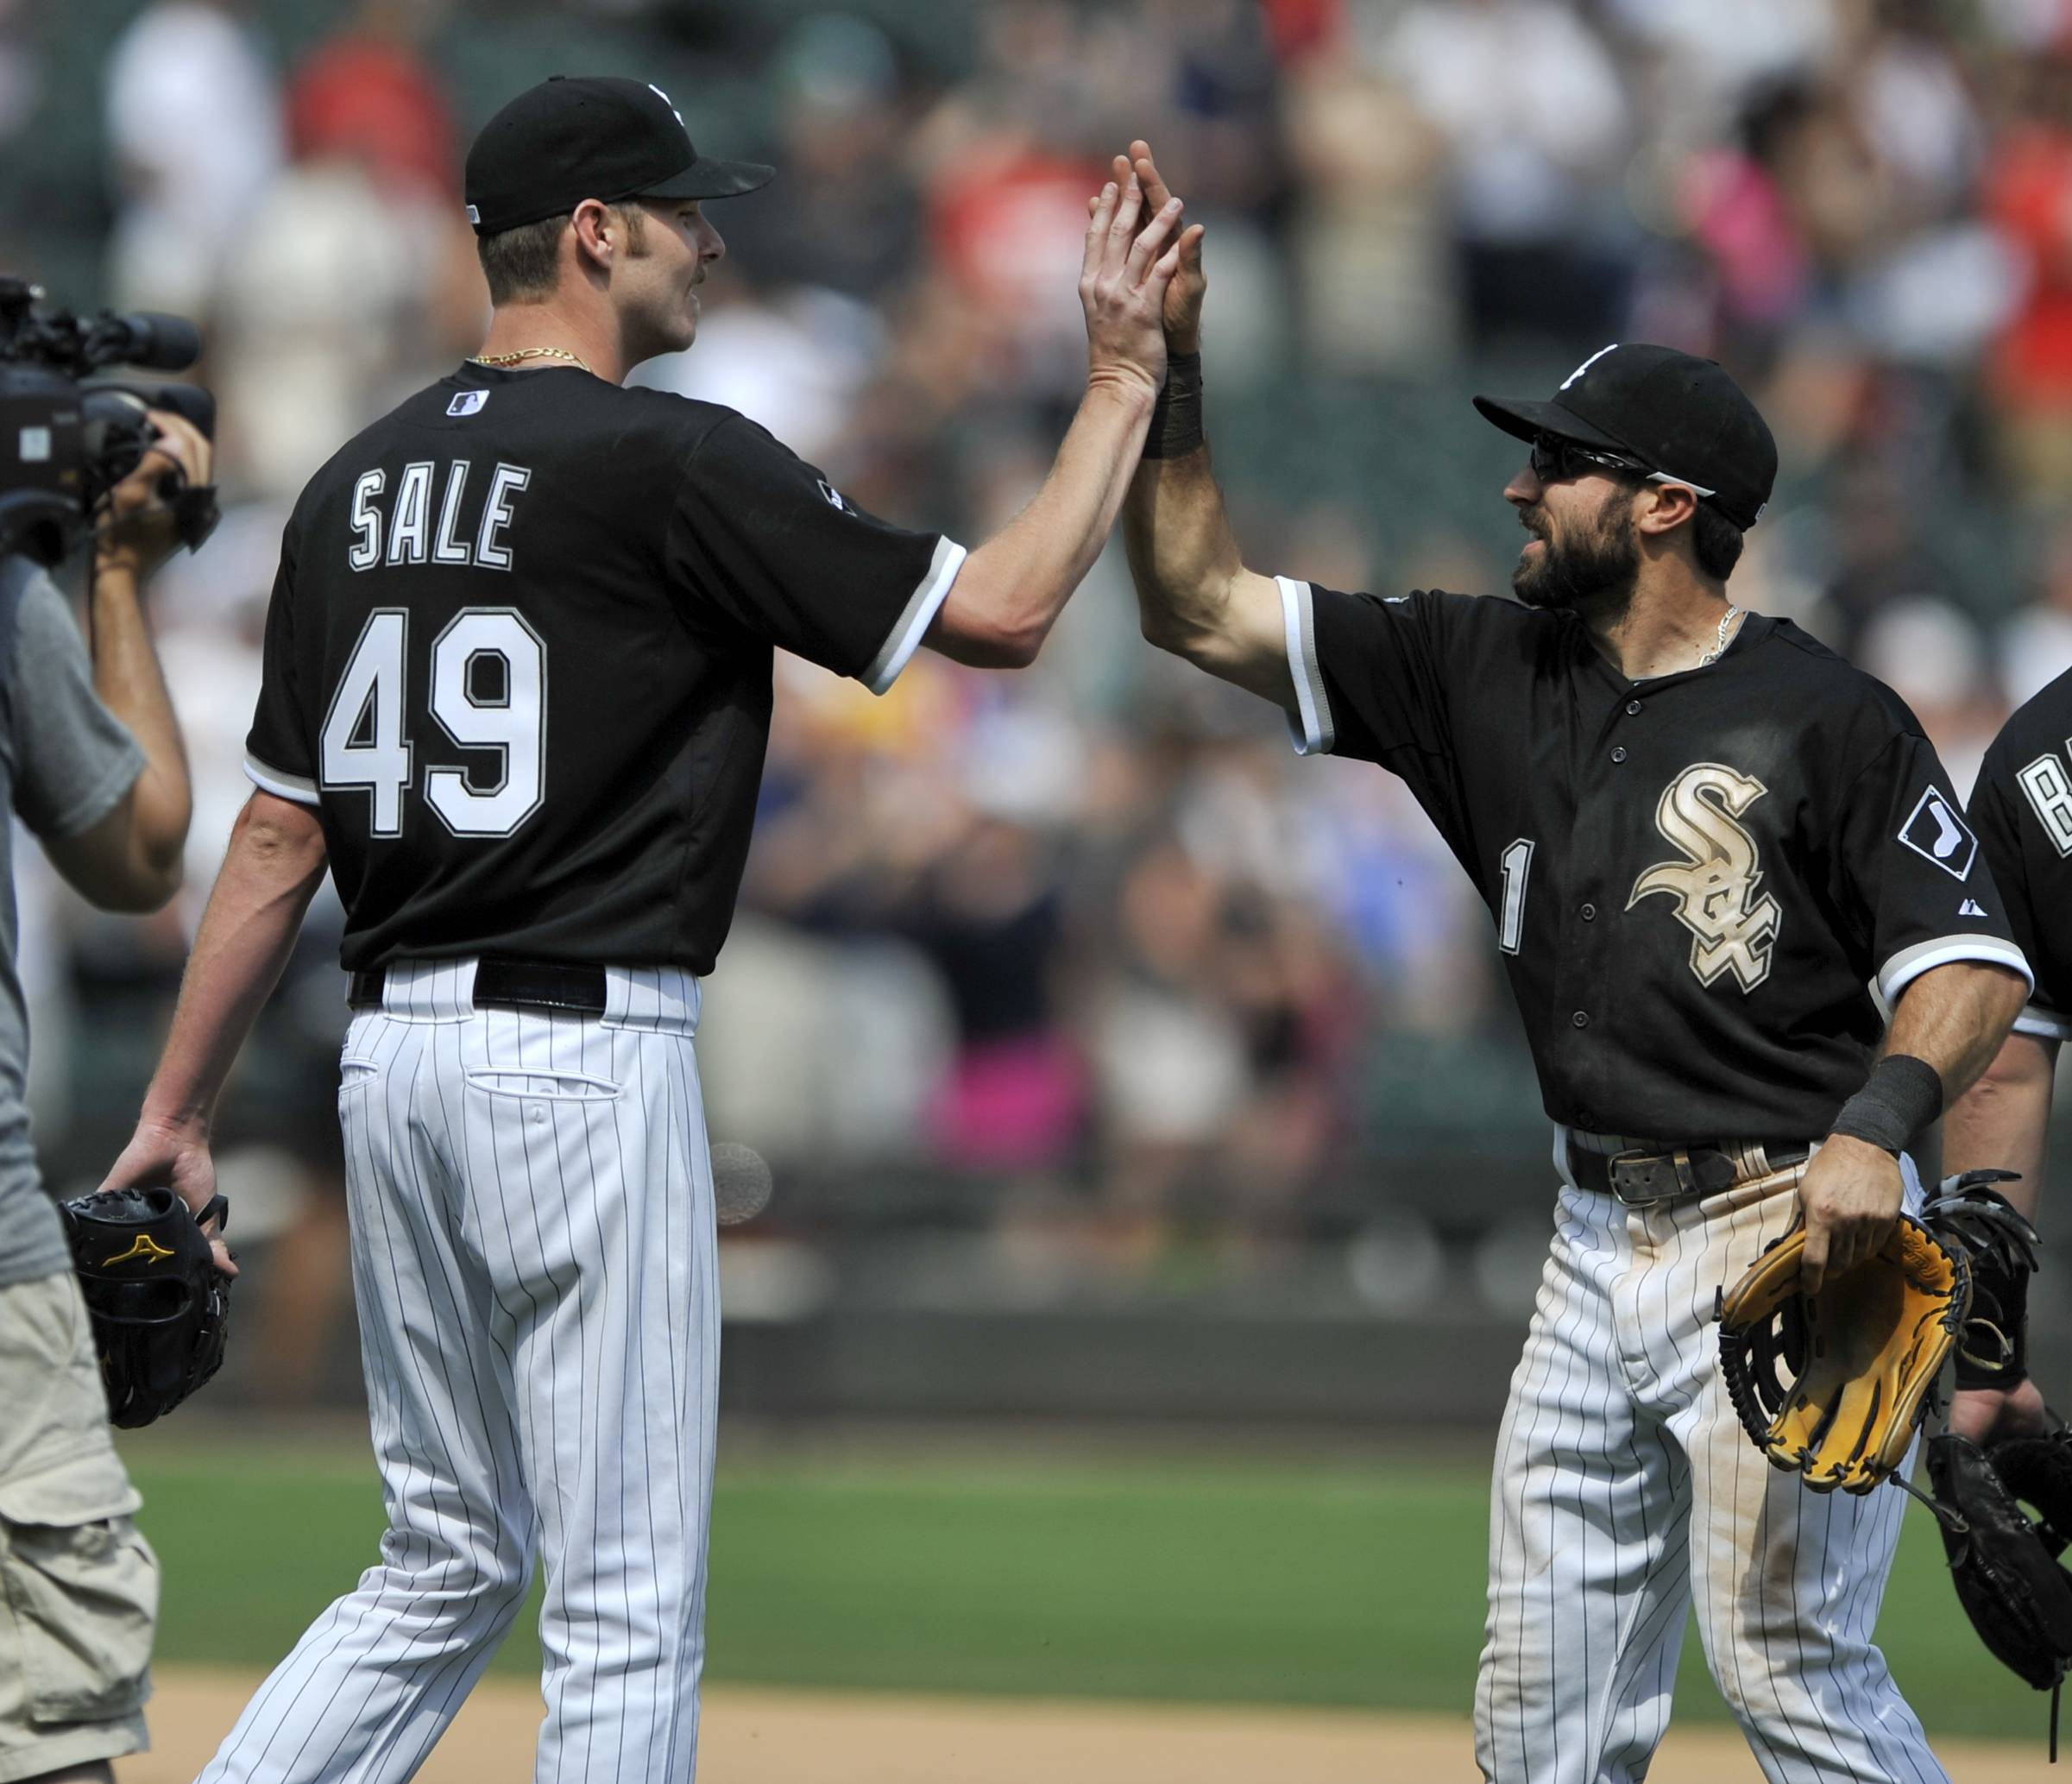 White Sox starting pitcher Chris Sale, left, celebrates with teammate Adam Eaton after going the distance Sunday. Sale allowed only 2 hits while striking out nine Padres batters.